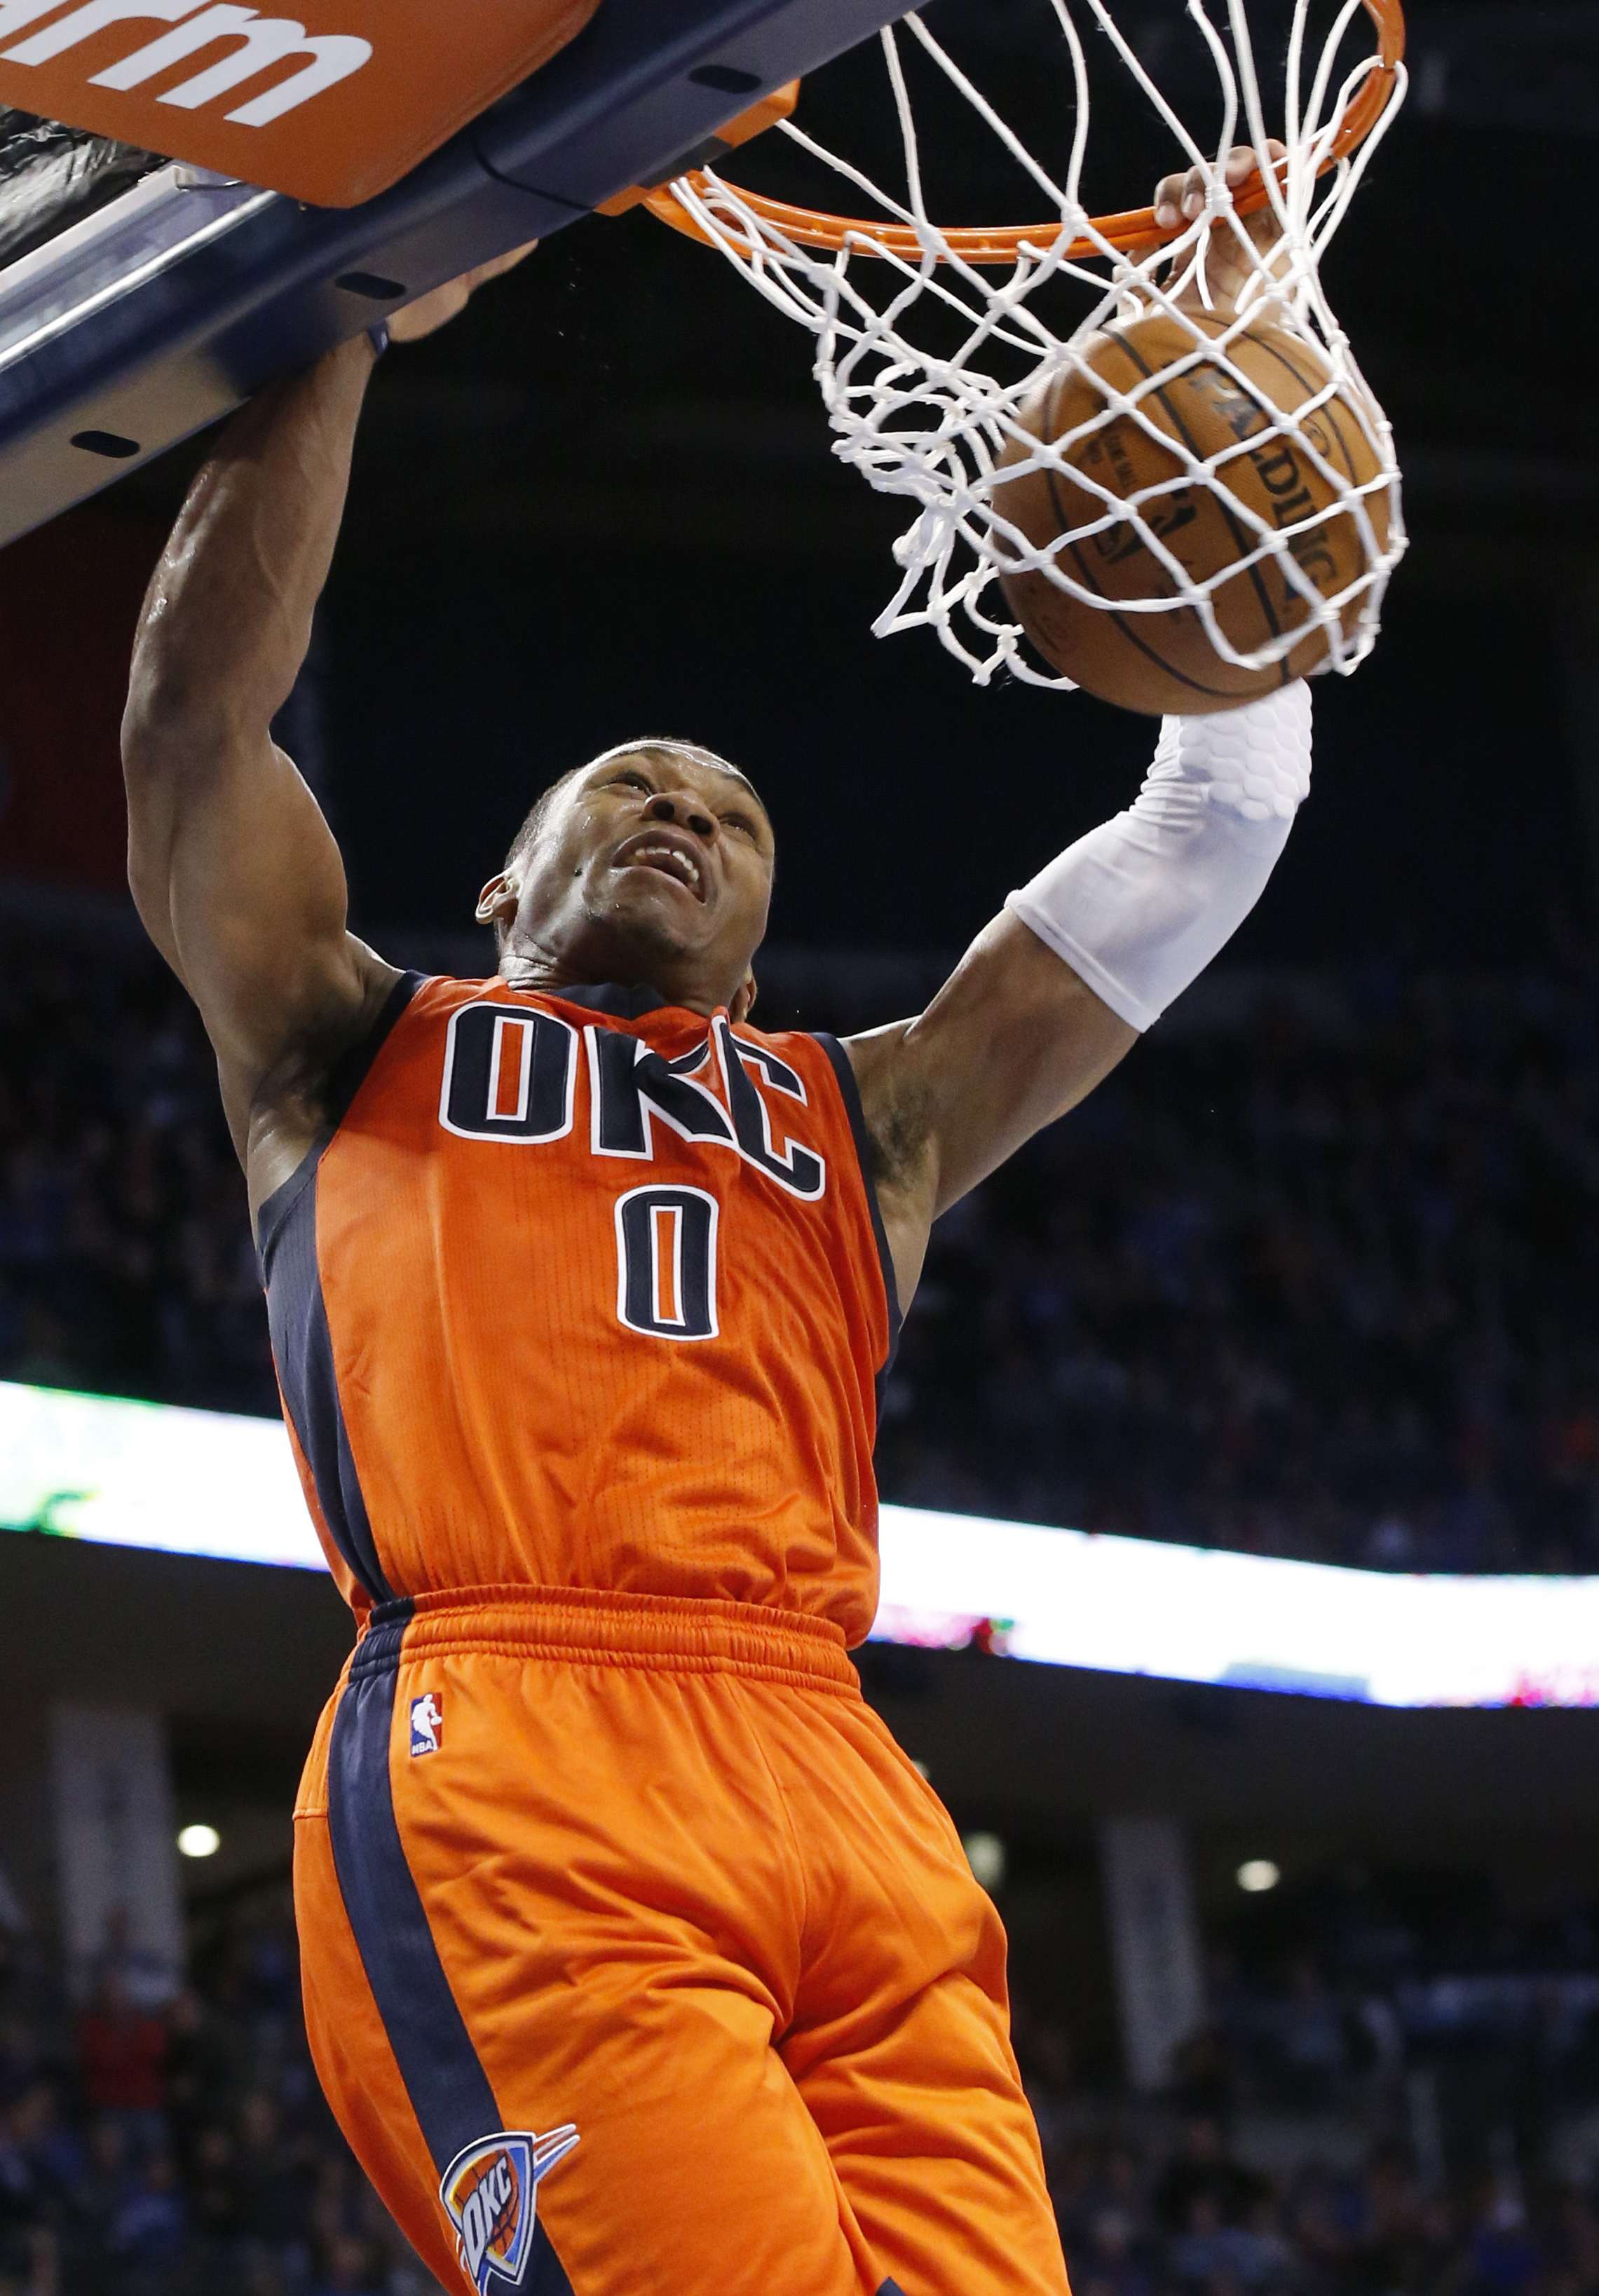 Oklahoma City Thunder guard Russell Westbrook dunks during the fourth quarter of an NBA basketball game against the Dallas Mavericks in Oklahoma City, Sunday, Nov. 22, 2015. Oklahoma City won 117-114. (AP Photo/Sue Ogrocki)